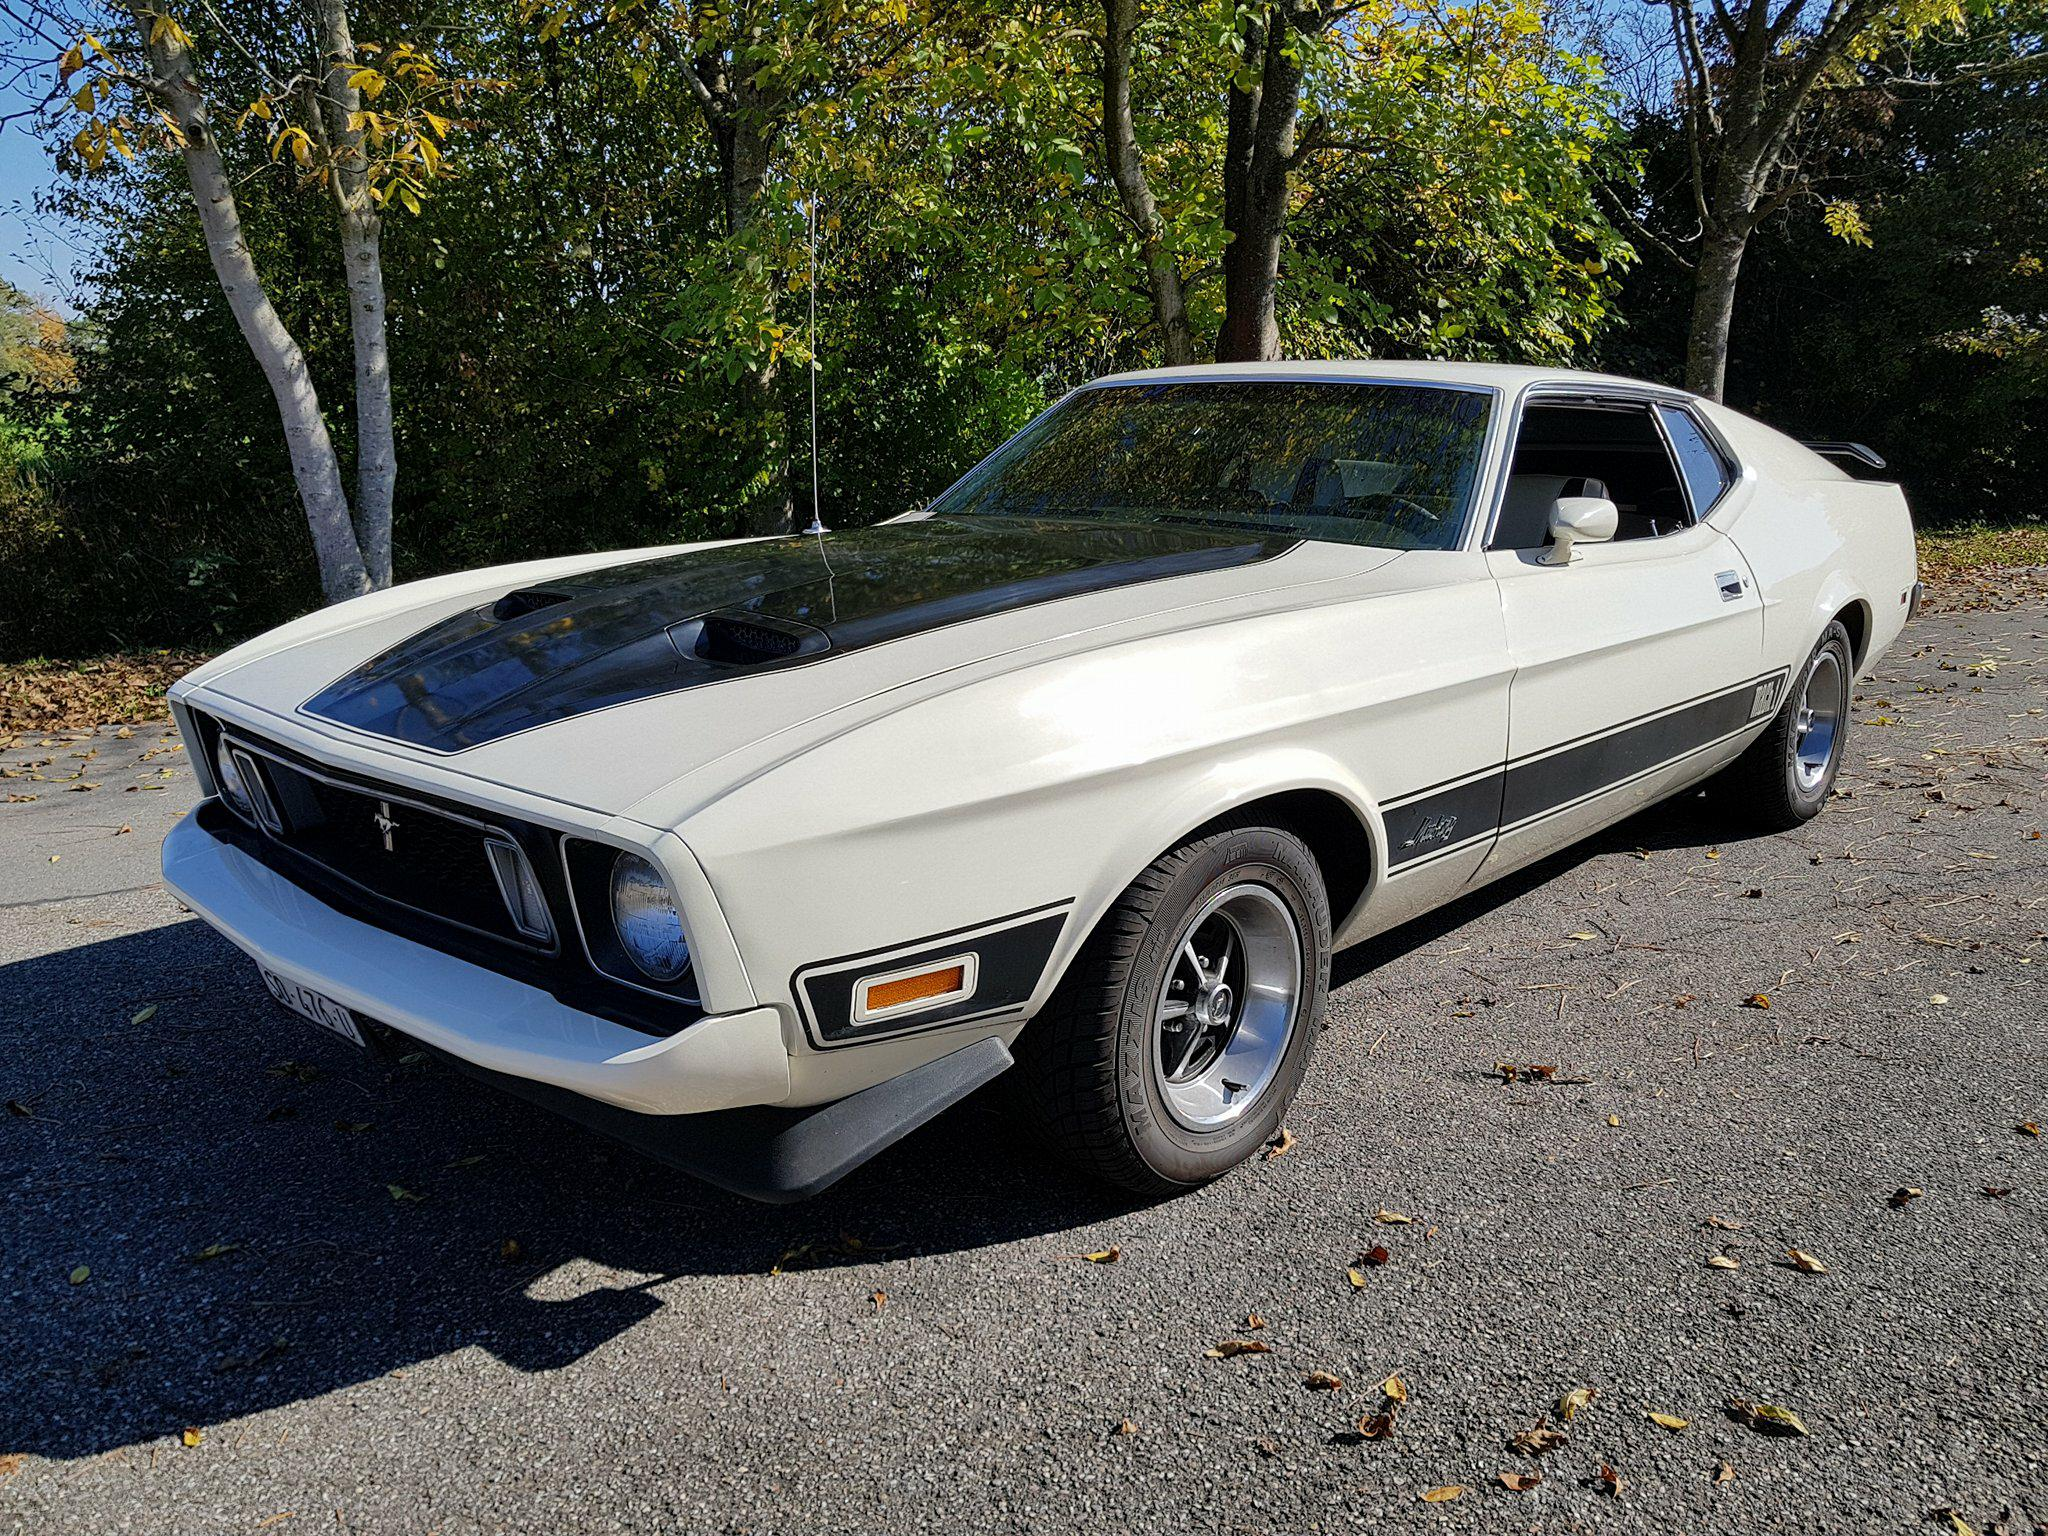 hatchback Ford USA Mustang Mach 1